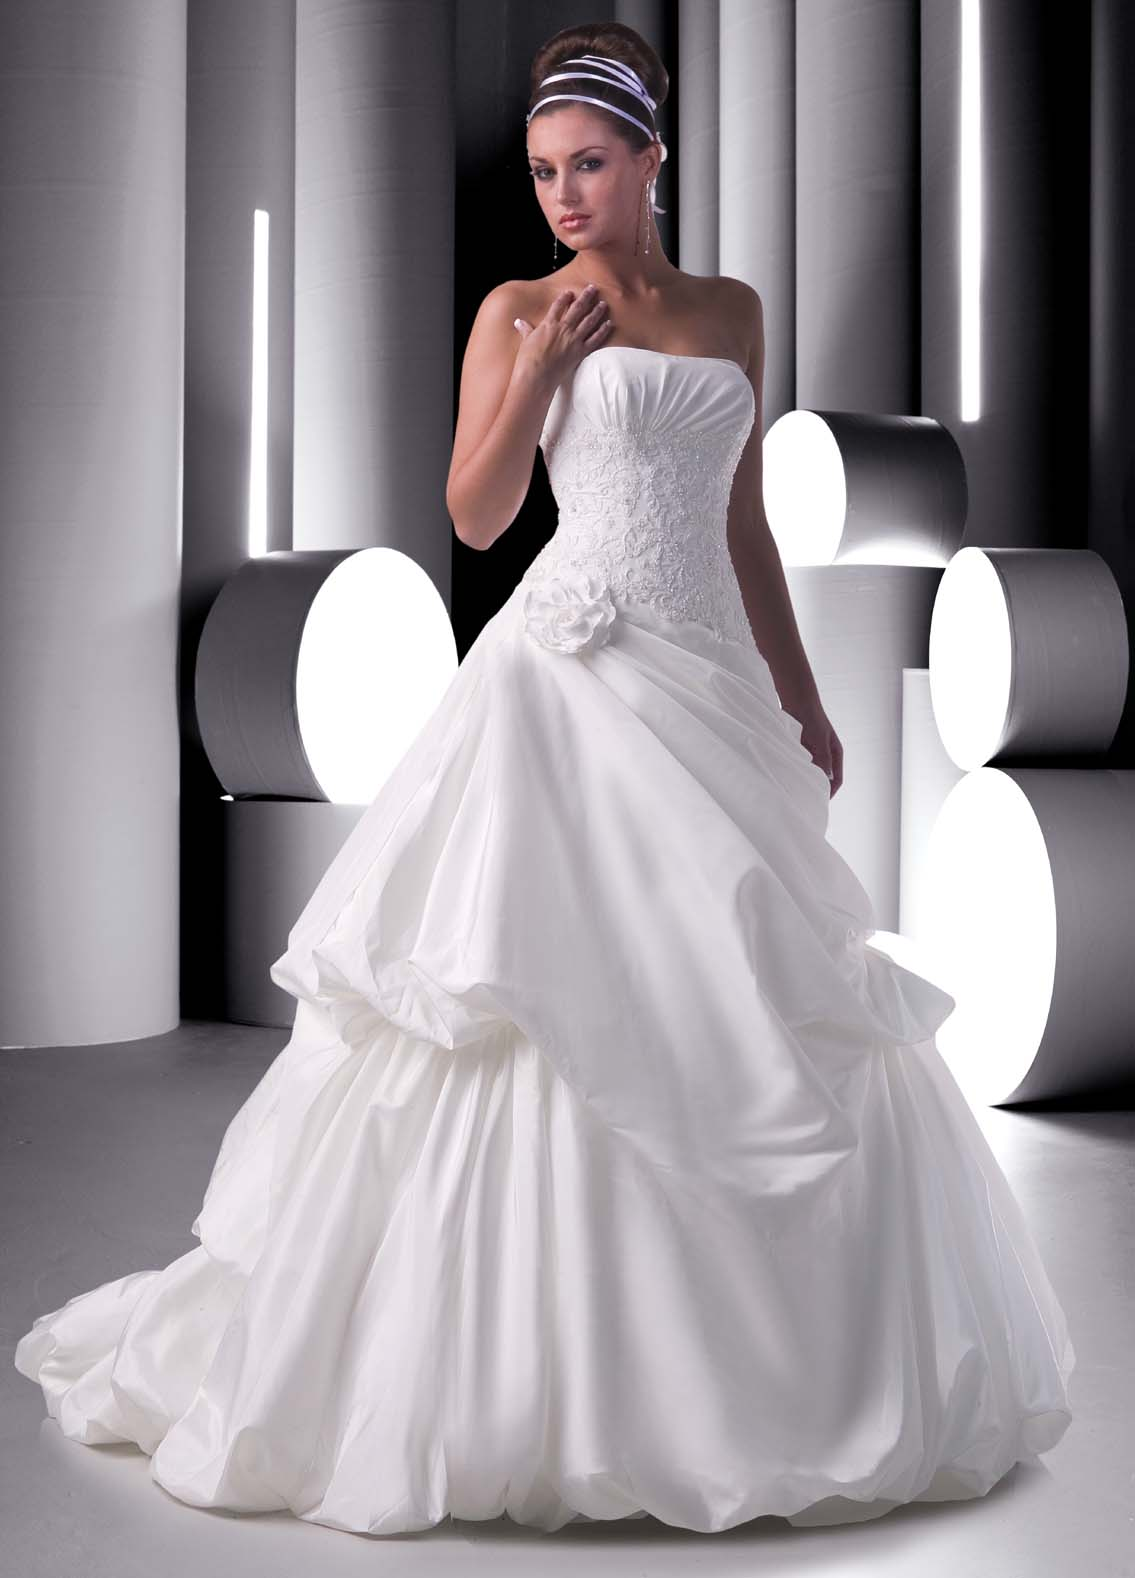 Wedding Gowns Under 300 Ball Gown Dresses